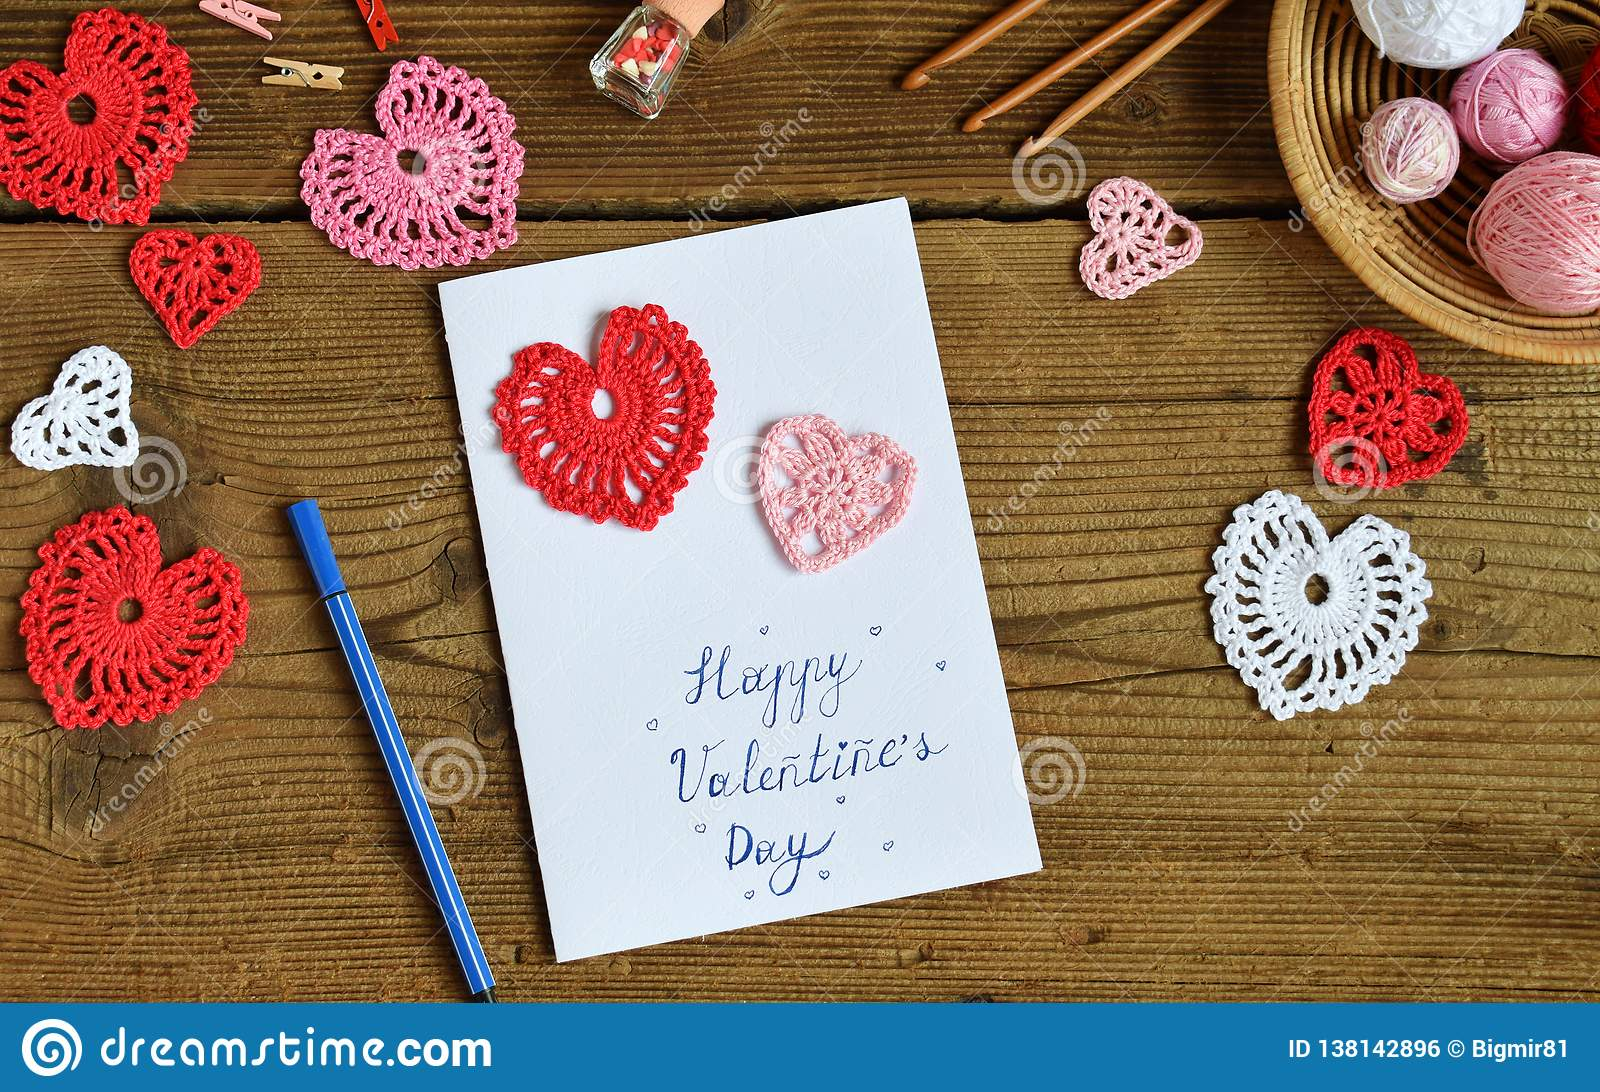 making of handmade valentine greeting card with crochet